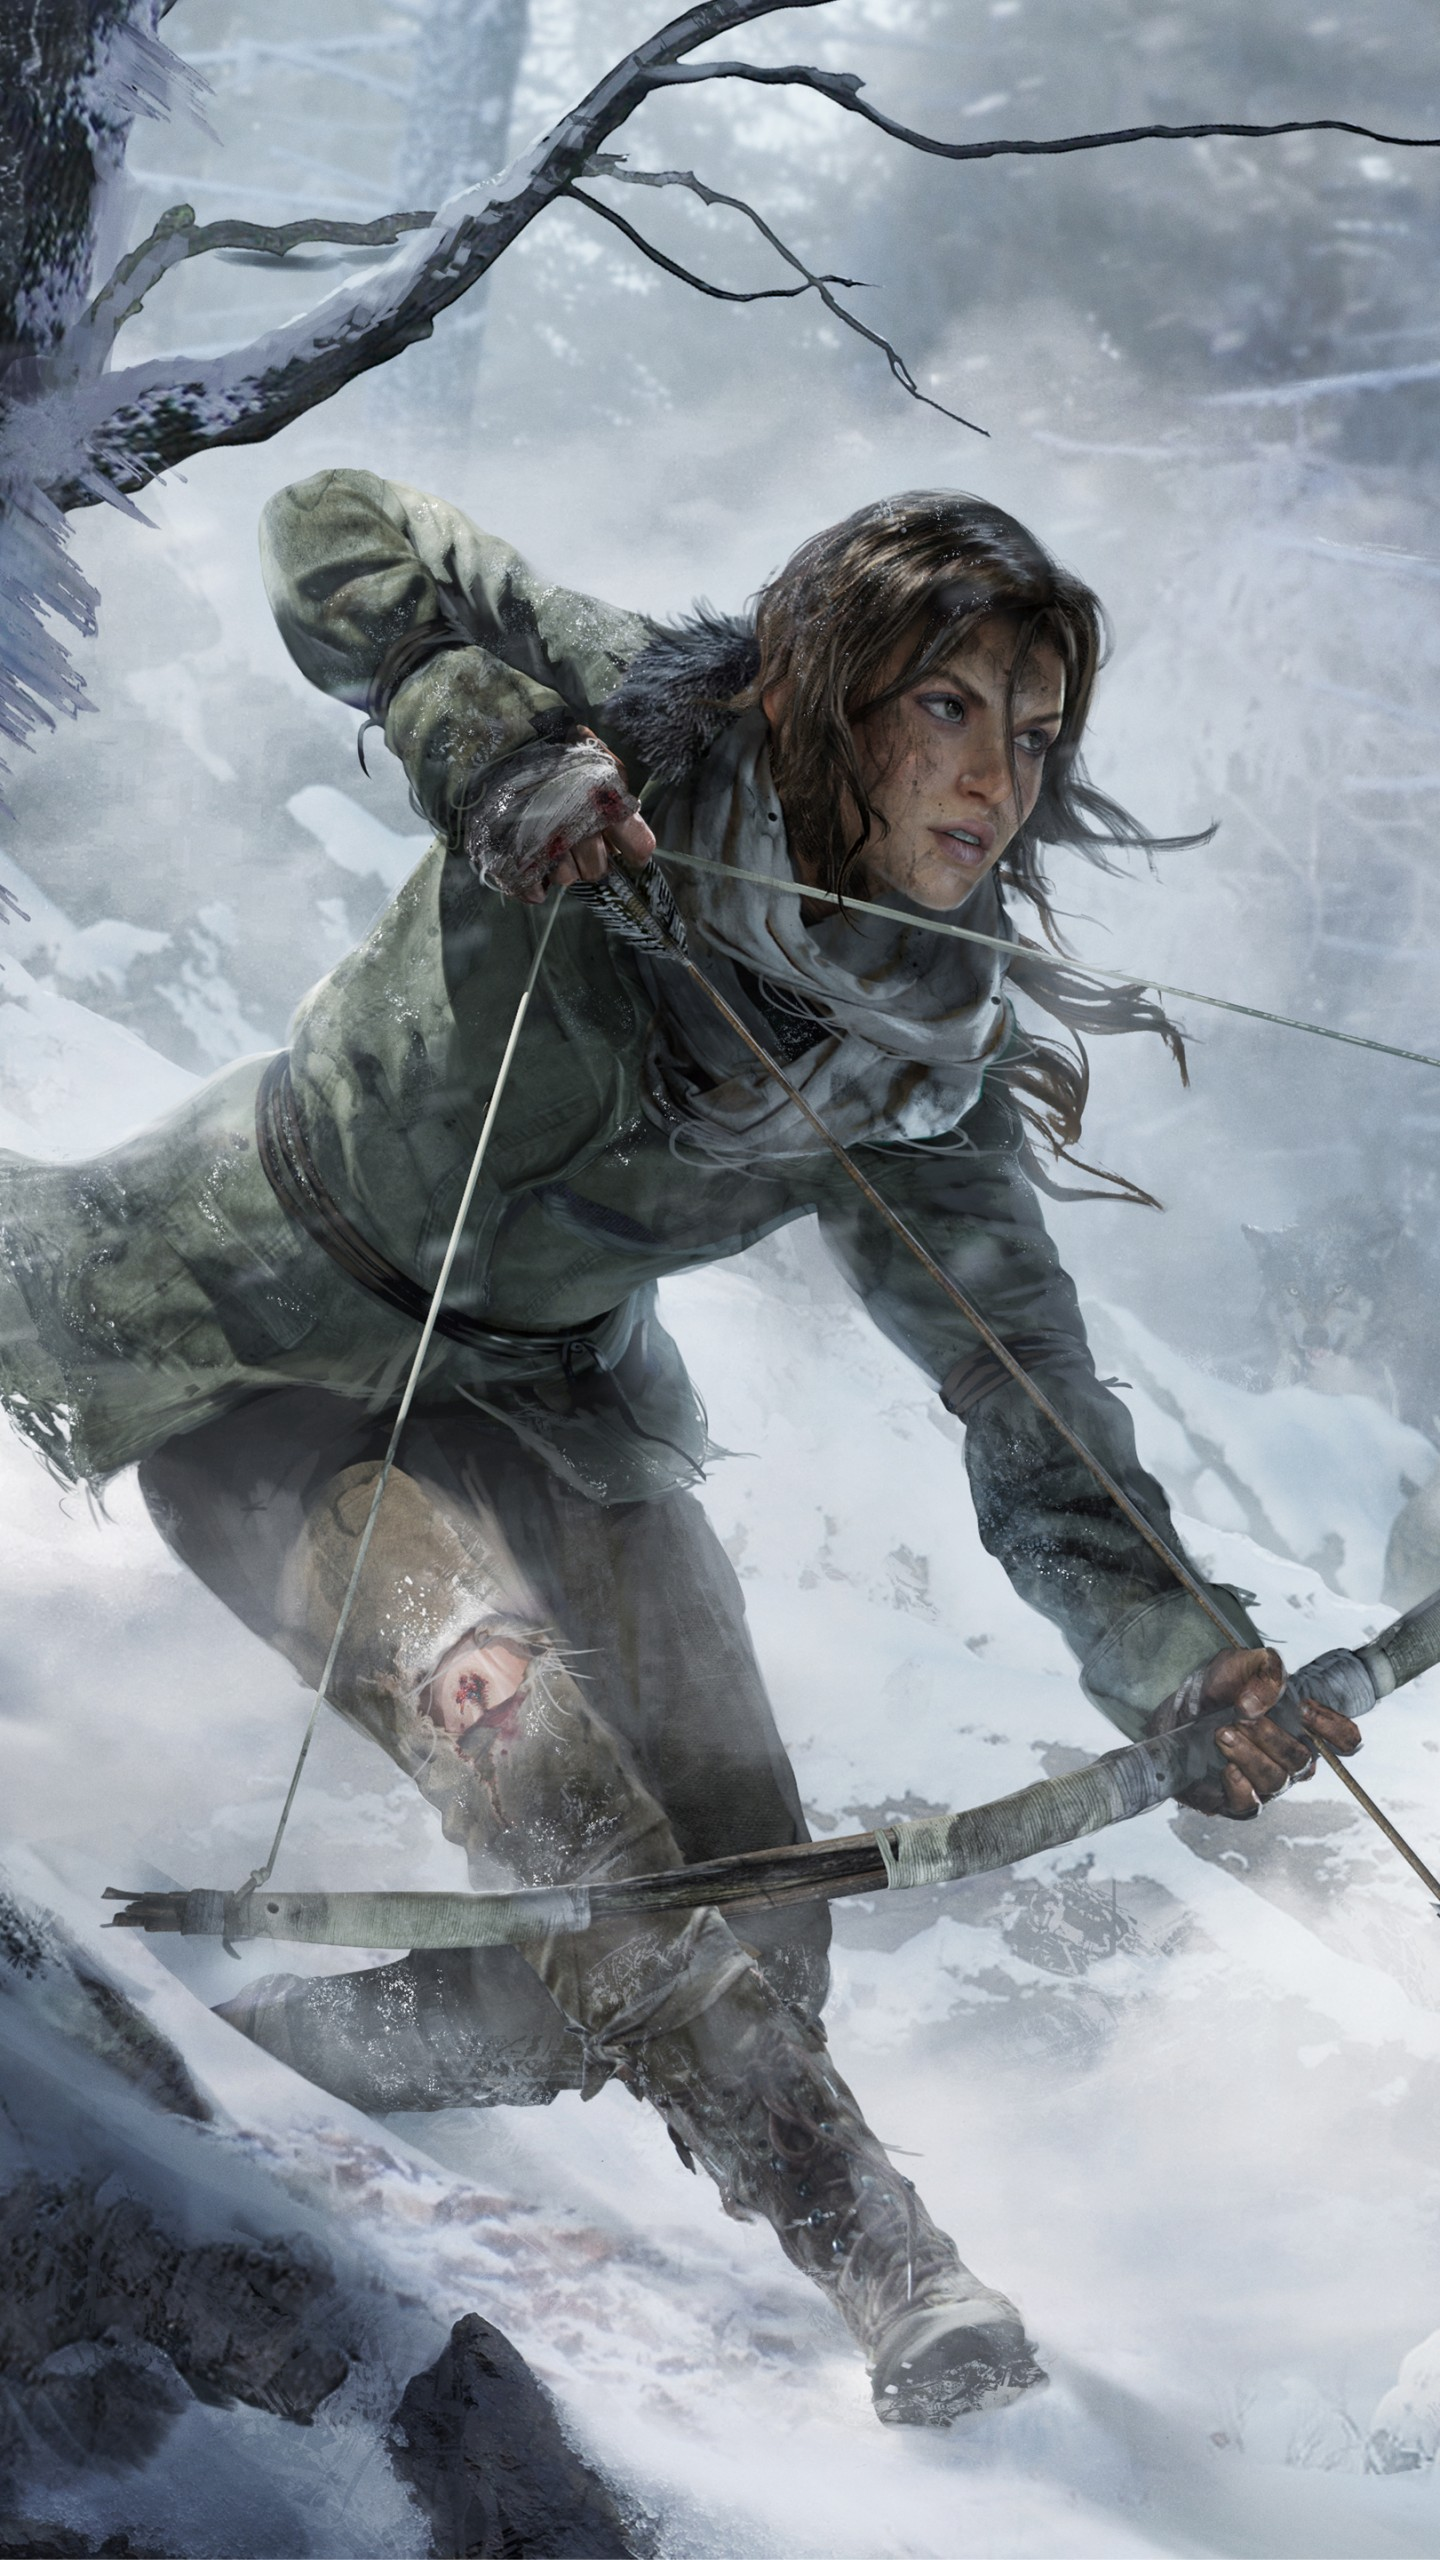 Wallpaper rise of the tomb raider game forest snow bow - Rise of the tomb raider 4k wallpaper ...